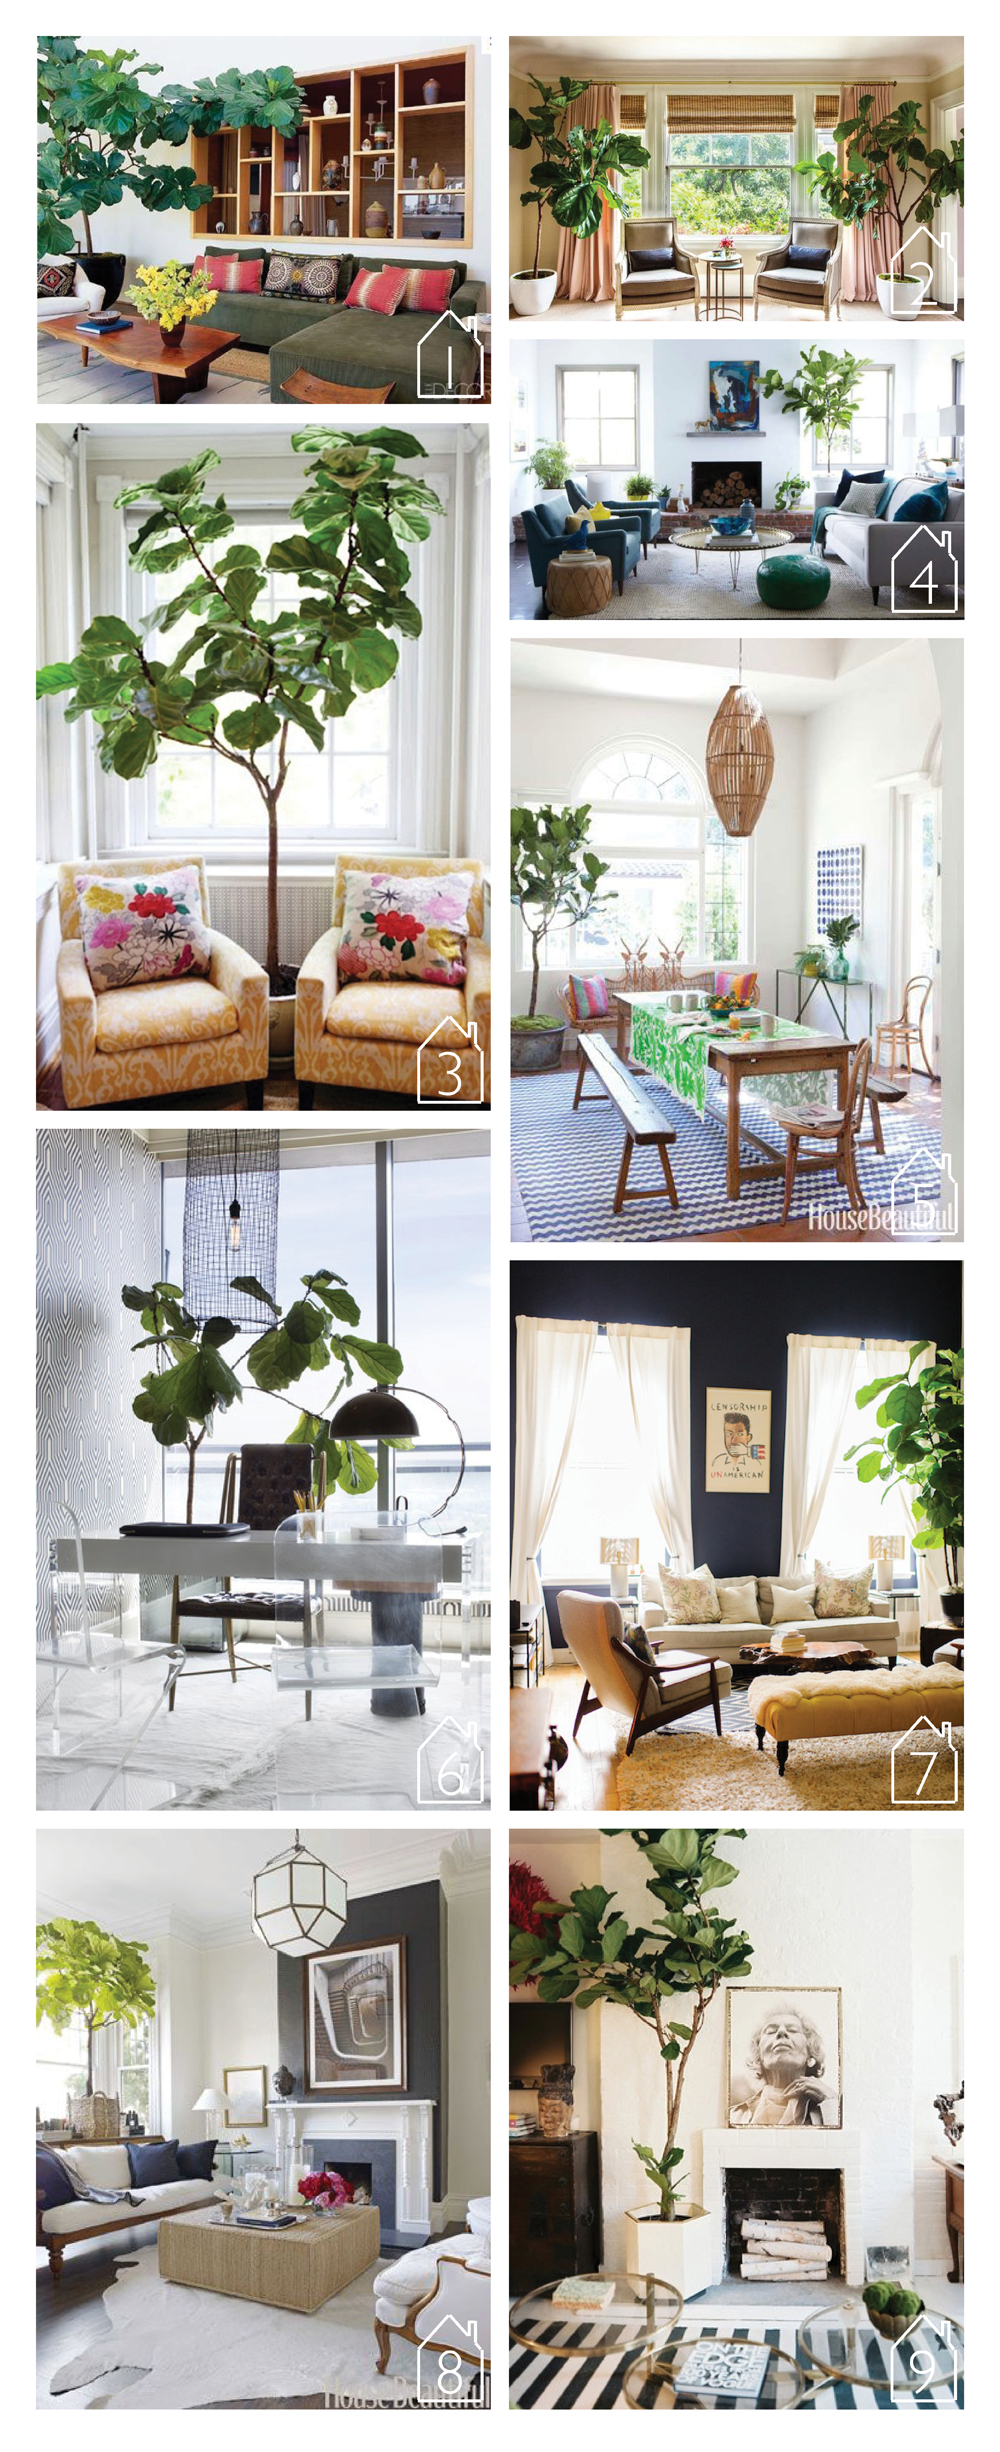 1. via  Elle Decor   2.  Chloe Warne r via  Lonny    3. by  Haddon Interiors   4. by  Emily Henderson  5. by  Nickey Kehoe  via  House Beautiful   6. by Lee Kleinhelter via  Lonny   7. Home of Lisa Salzer via  Glitter Guide   8. by  Ken Fulk  via  House Beautiful   9. by Anna Burke via  Lonny